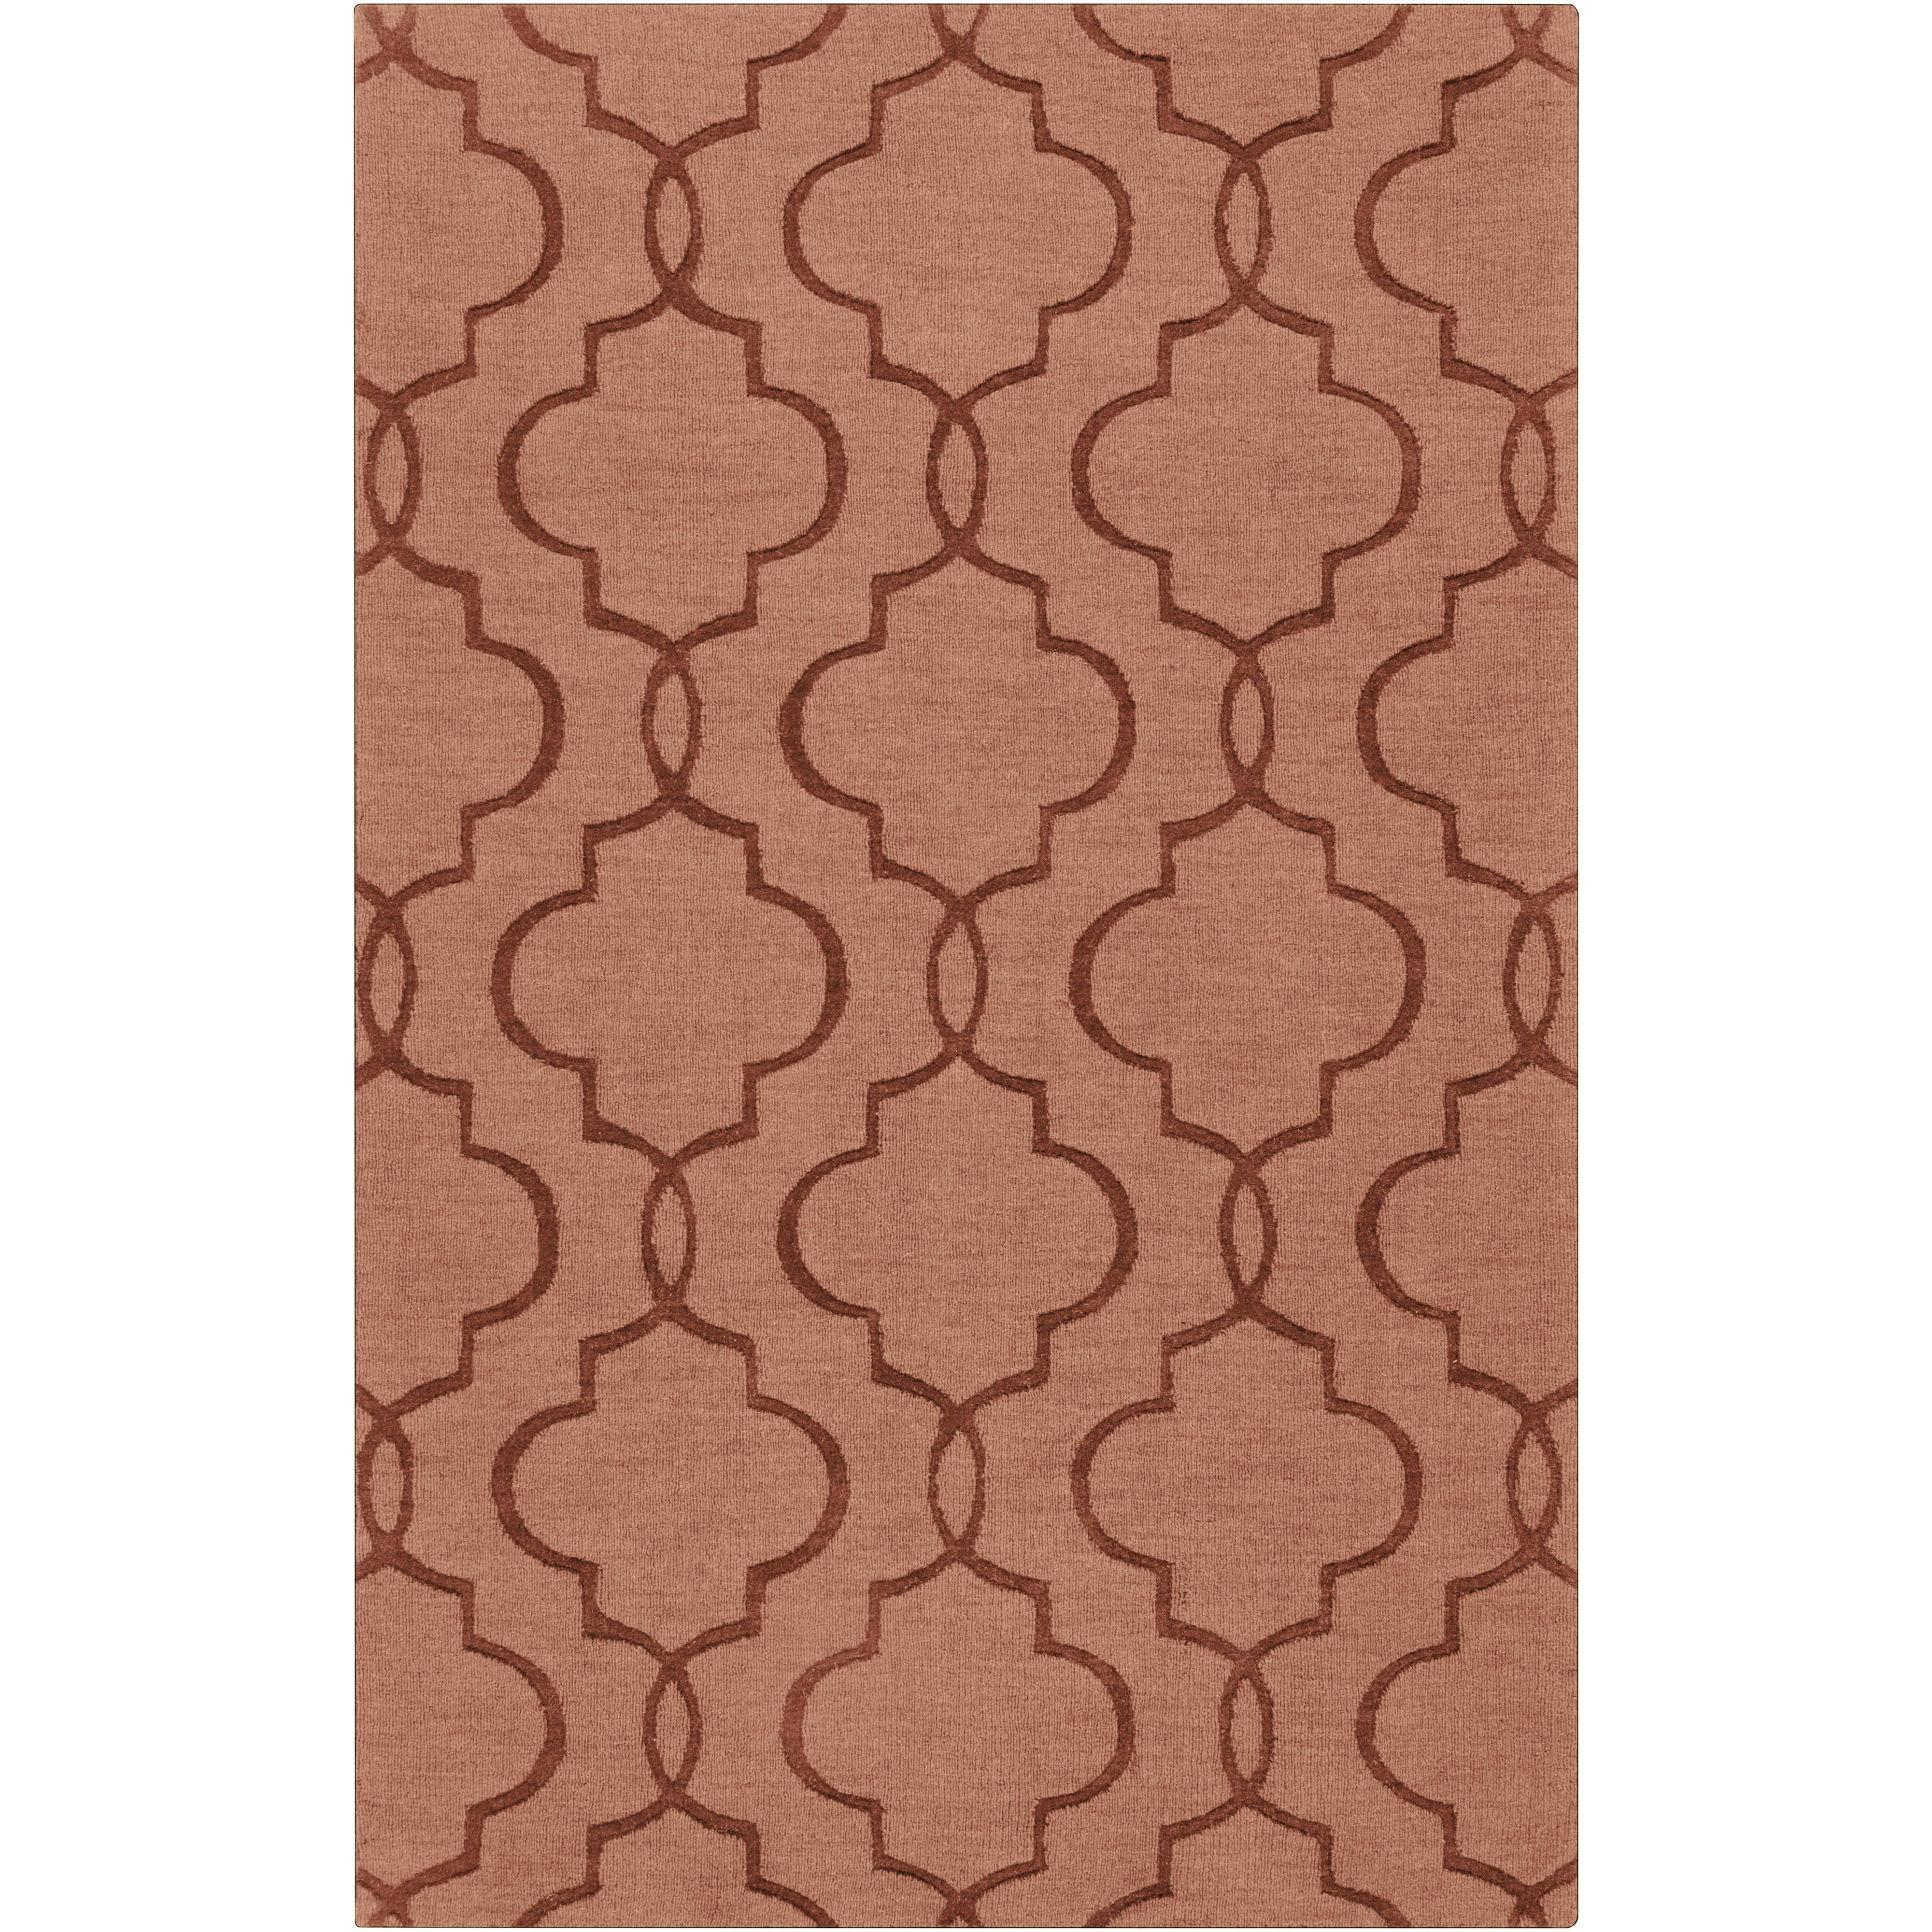 Mystique 2' x 3' by 9596 at Becker Furniture